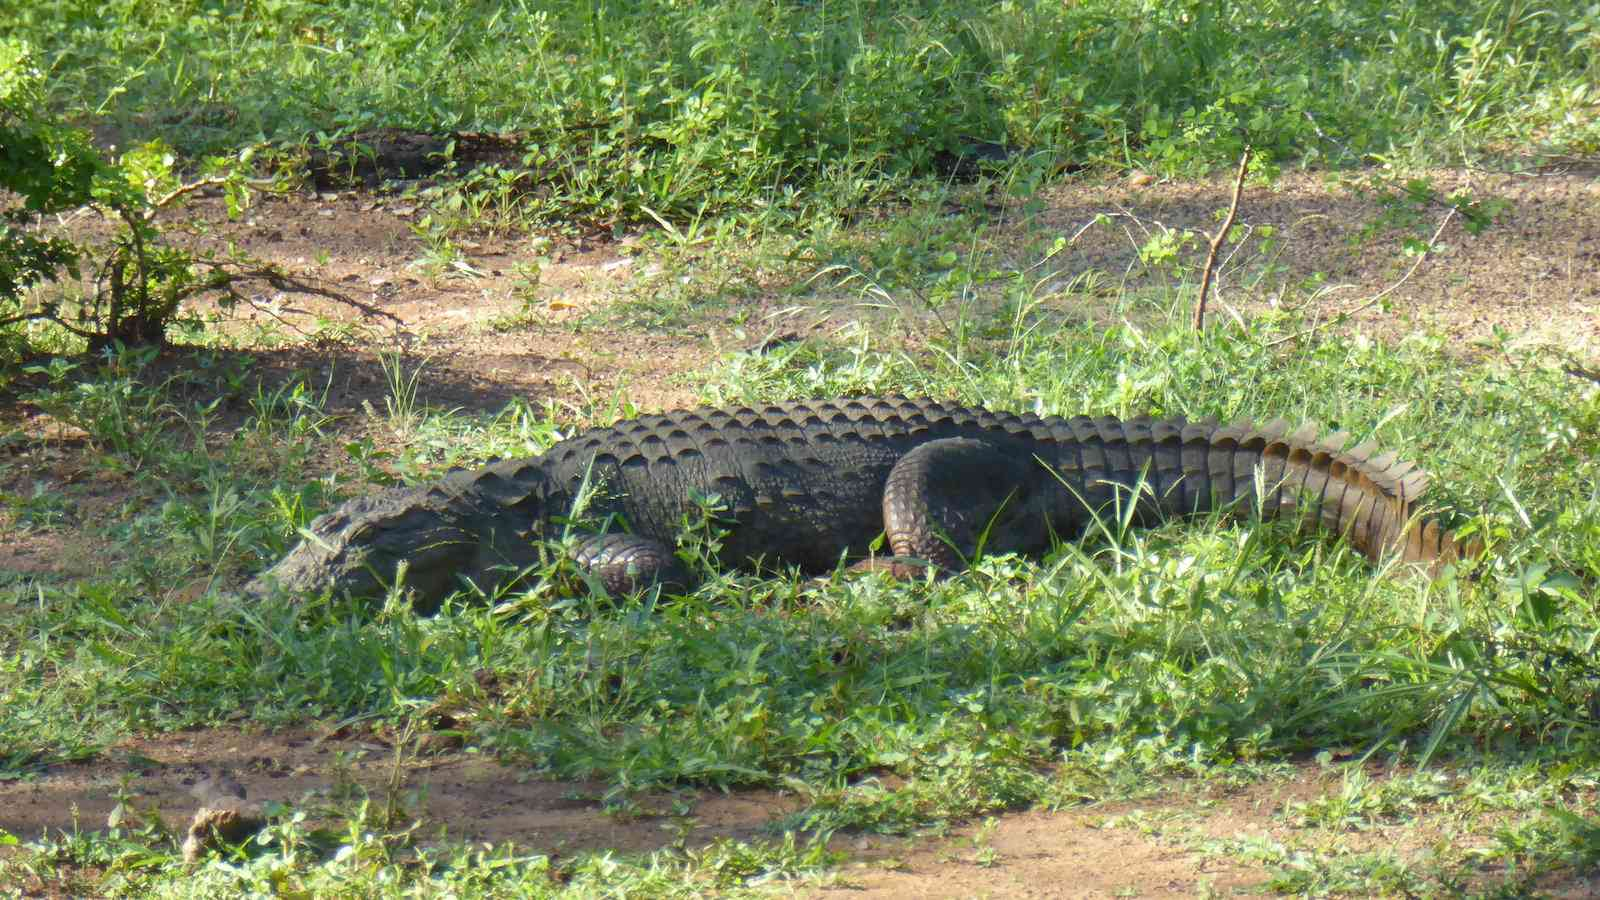 Mugger crocodiles can also be seen regularly in Udawalawe National Park